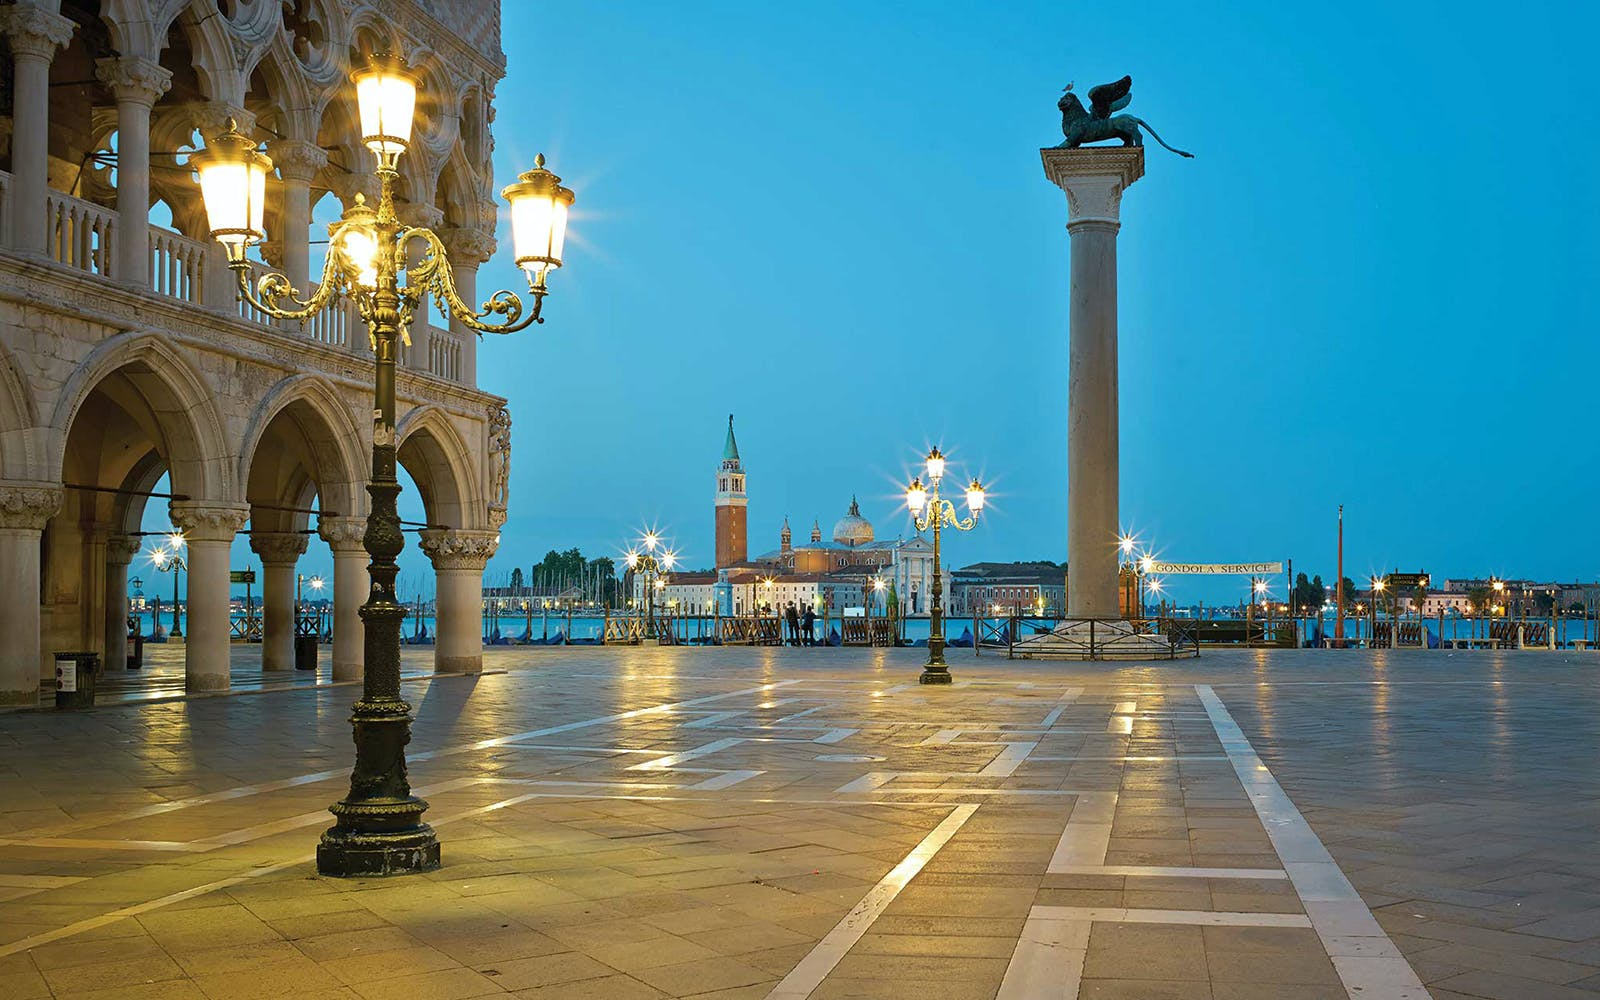 venice walking tour & st. mark's basilica - skip the line-1